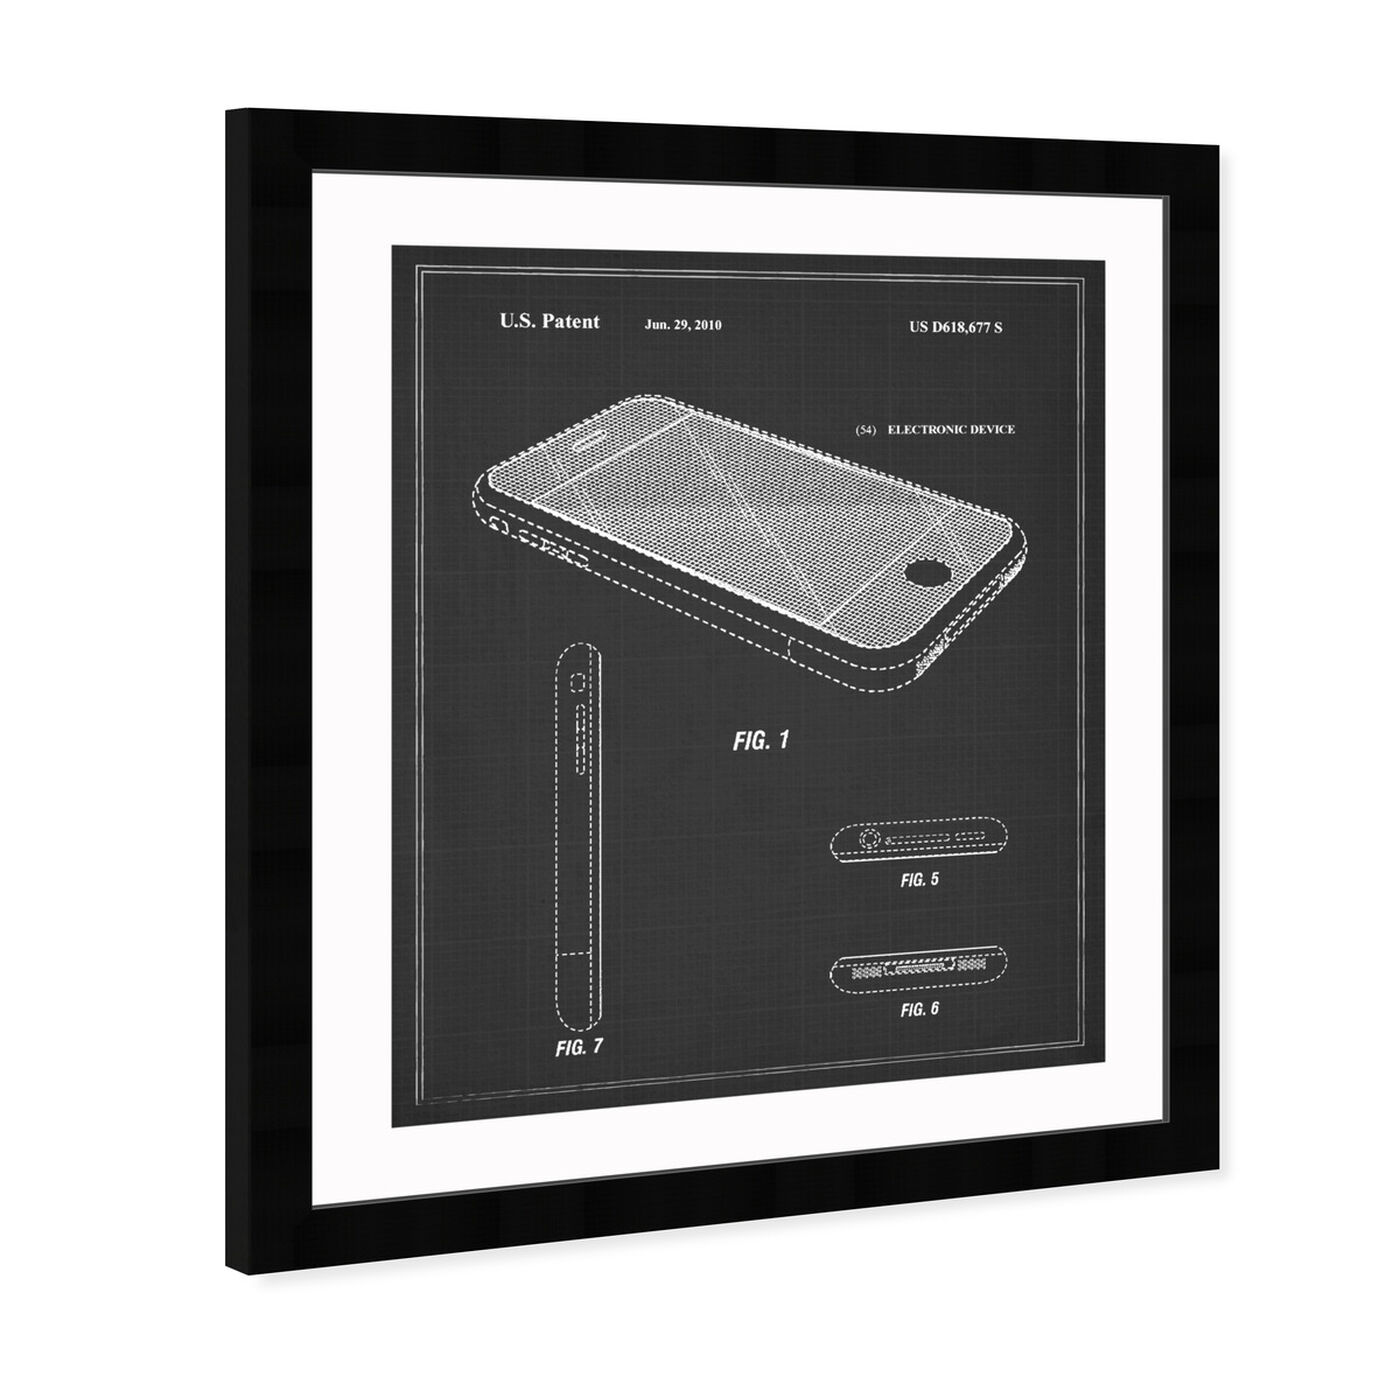 Angled view of Apple Iphone, 2010 - Noir featuring symbols and objects and workspace art.